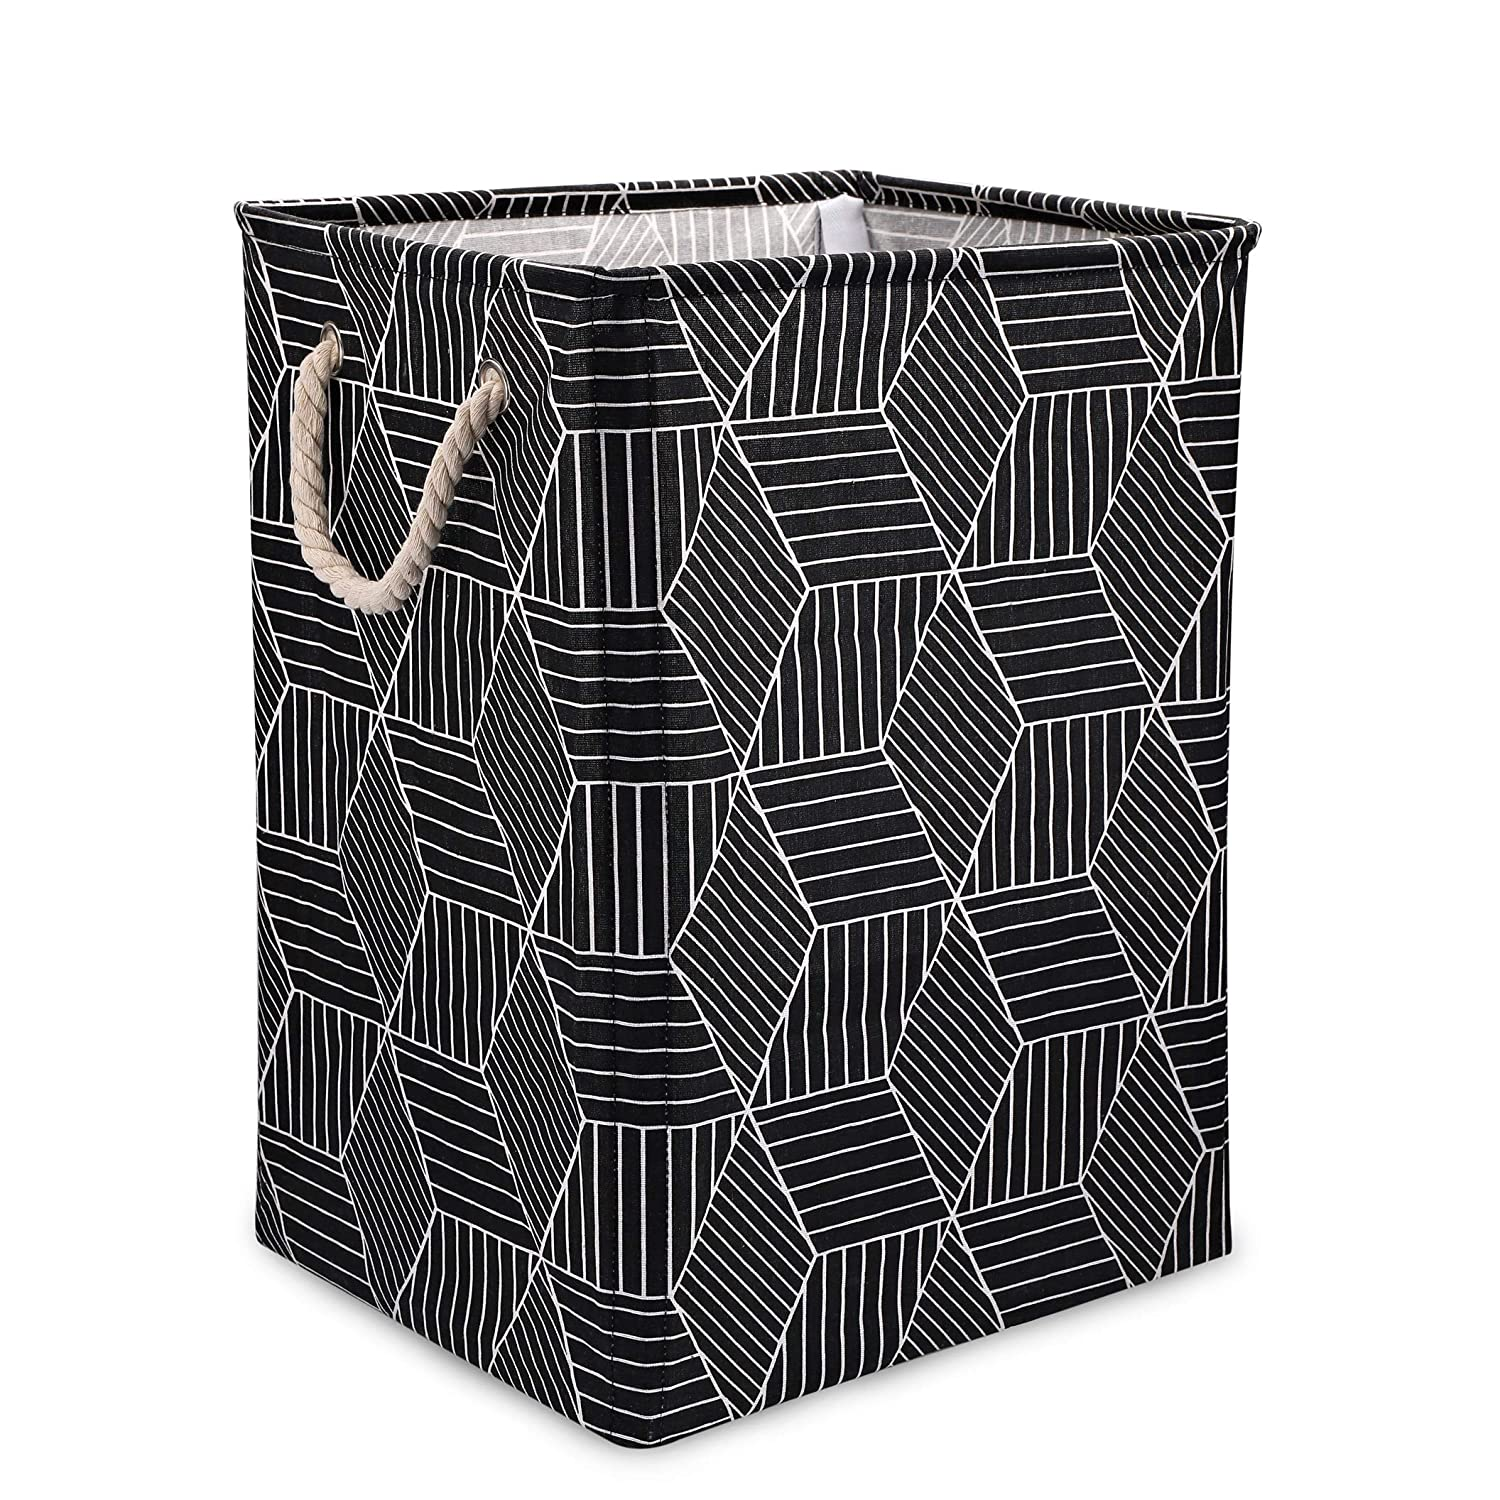 Scnvo Laundry Basket with Handles Linen Hampers for Laundry Storage,Laundry Bag Well-Holding Upgrade Foldable Laundry Hamper for Toys Clothing Organization (Black)